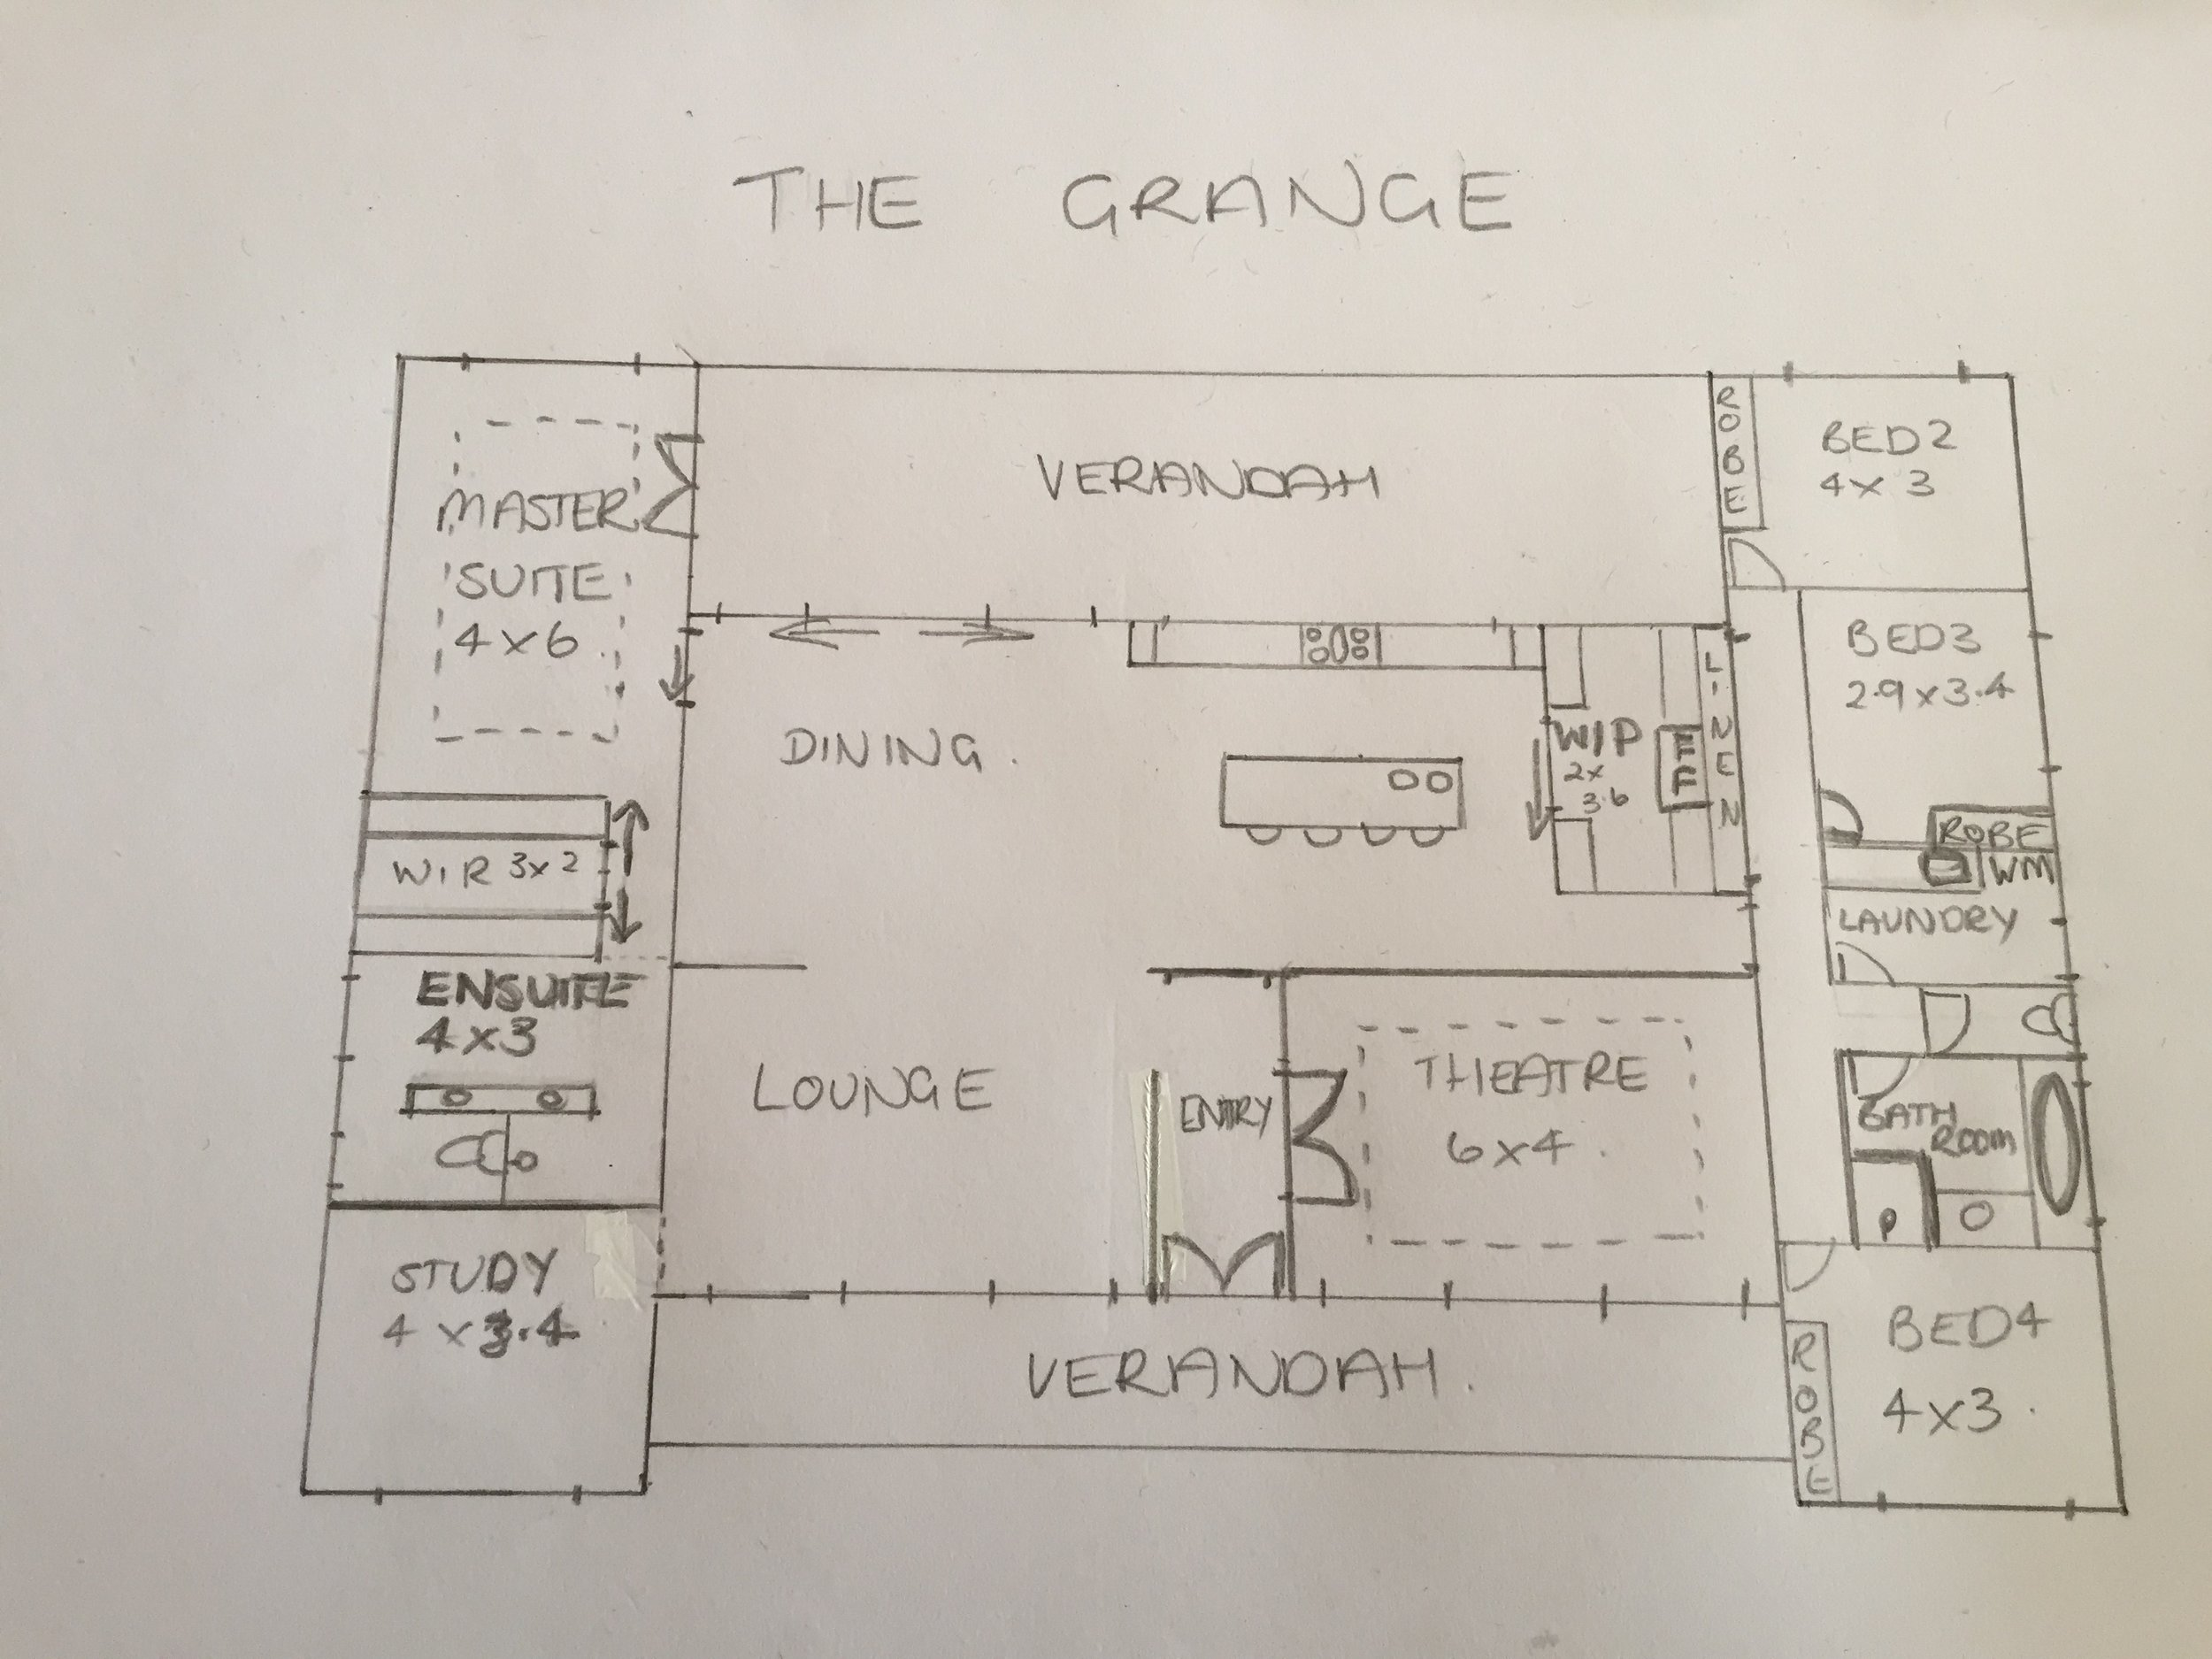 Tracy Coid's winning entry - personalise The Grange floorplan category.